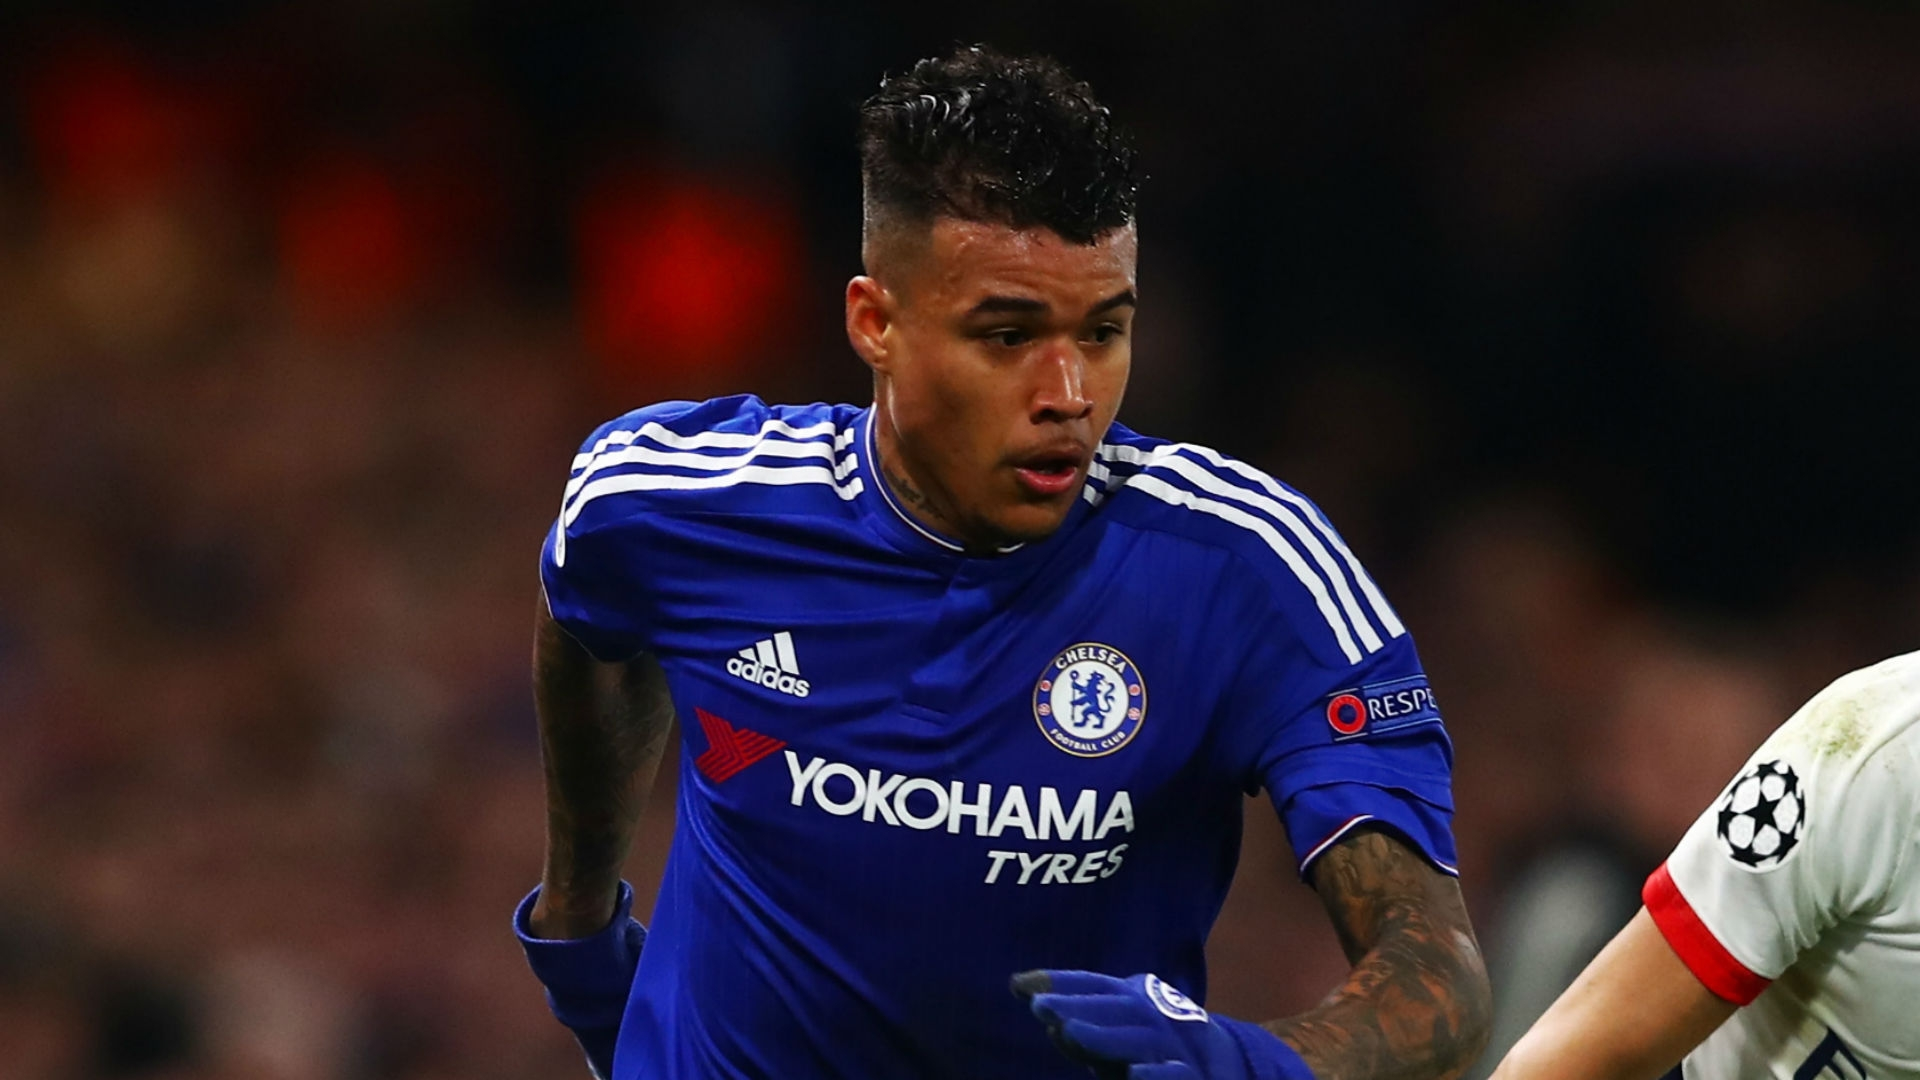 Chelsea issued an official statement apologizing for Kenedy's conduct and assuring the Chinese fans that the messages do in no way represent the attitude of the other members of the squad.